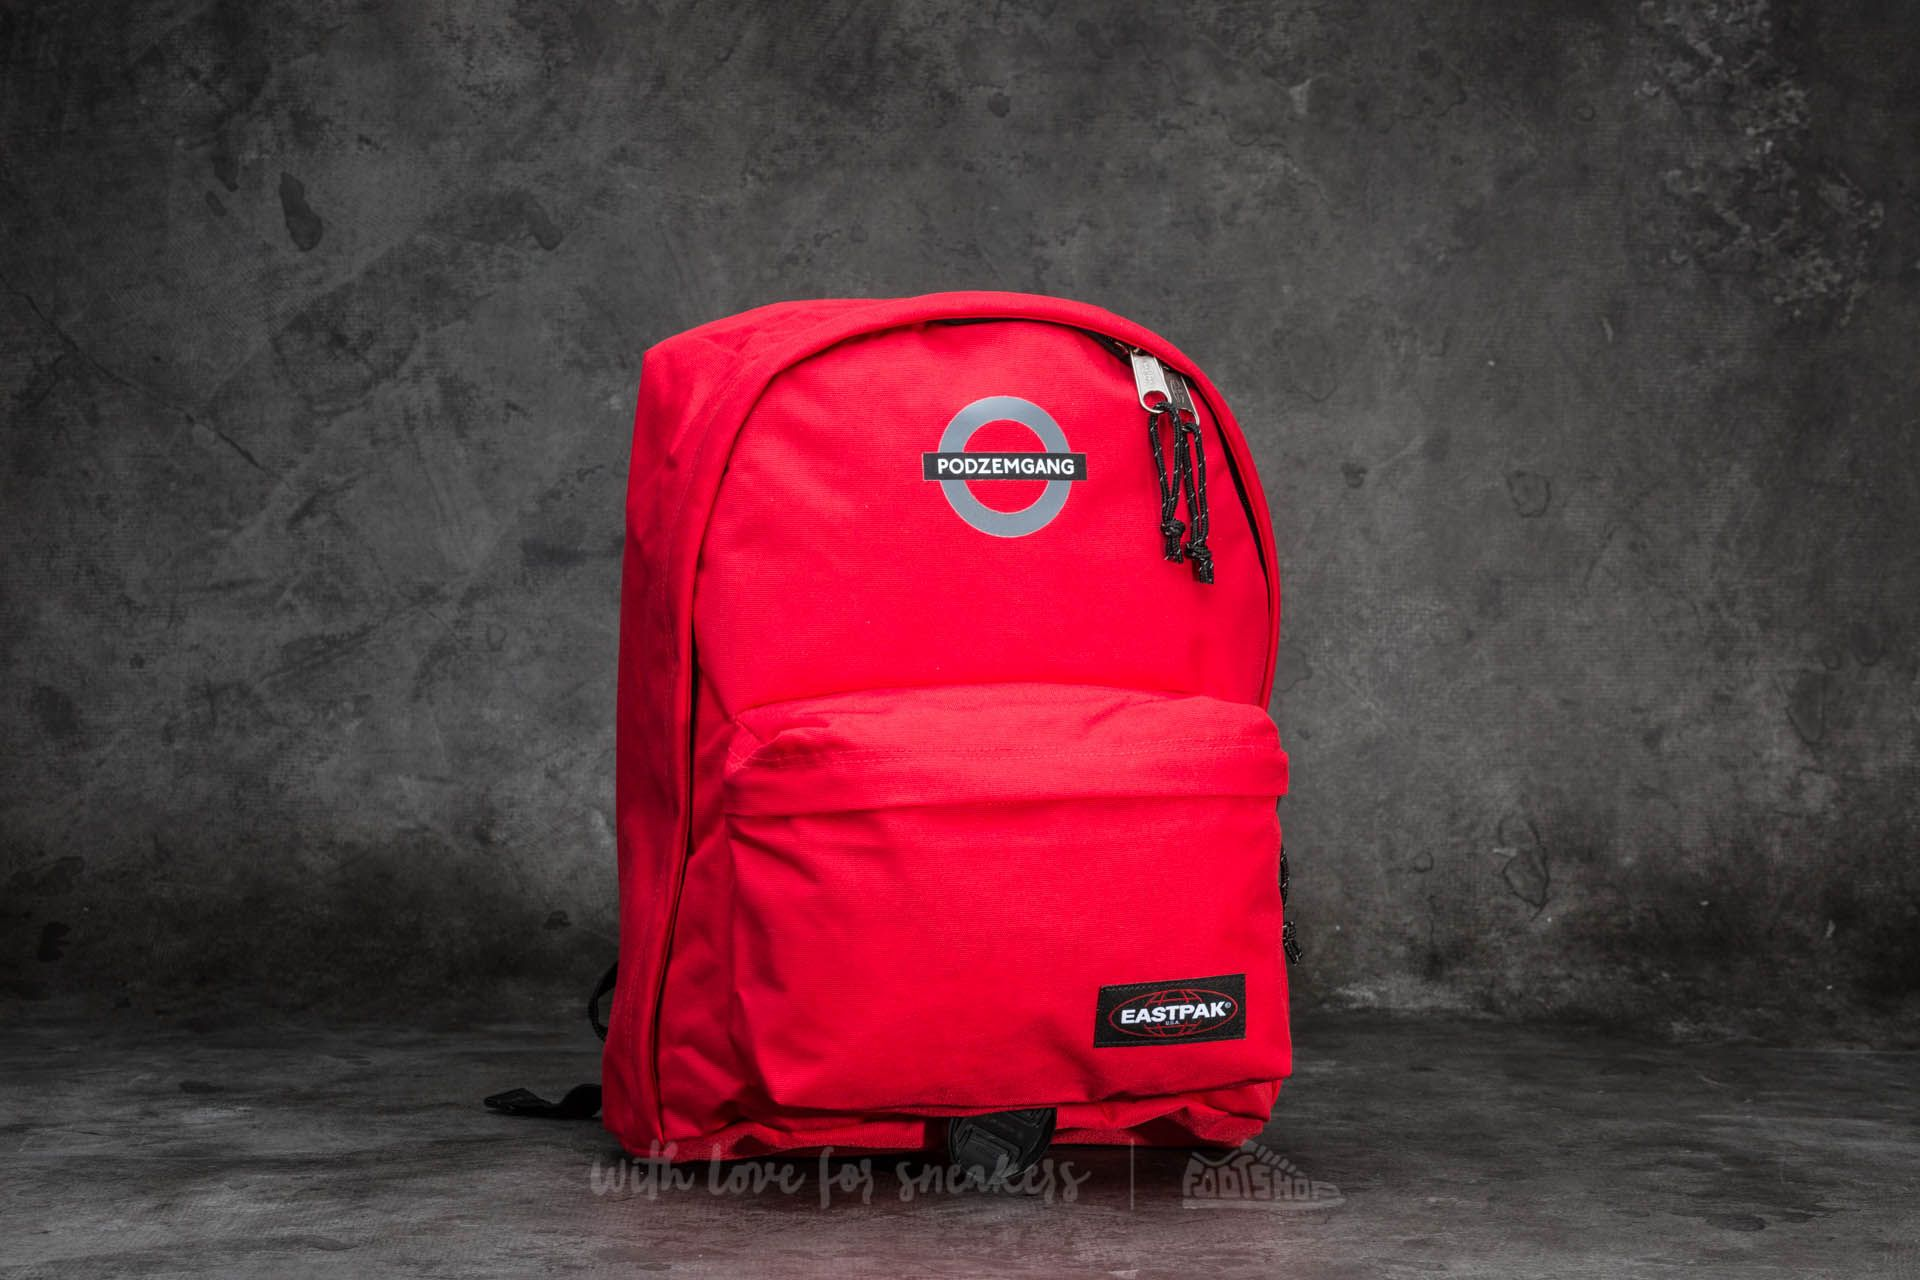 Eastpak Out Of Office Podzemgang Chuppachop Red - 17443